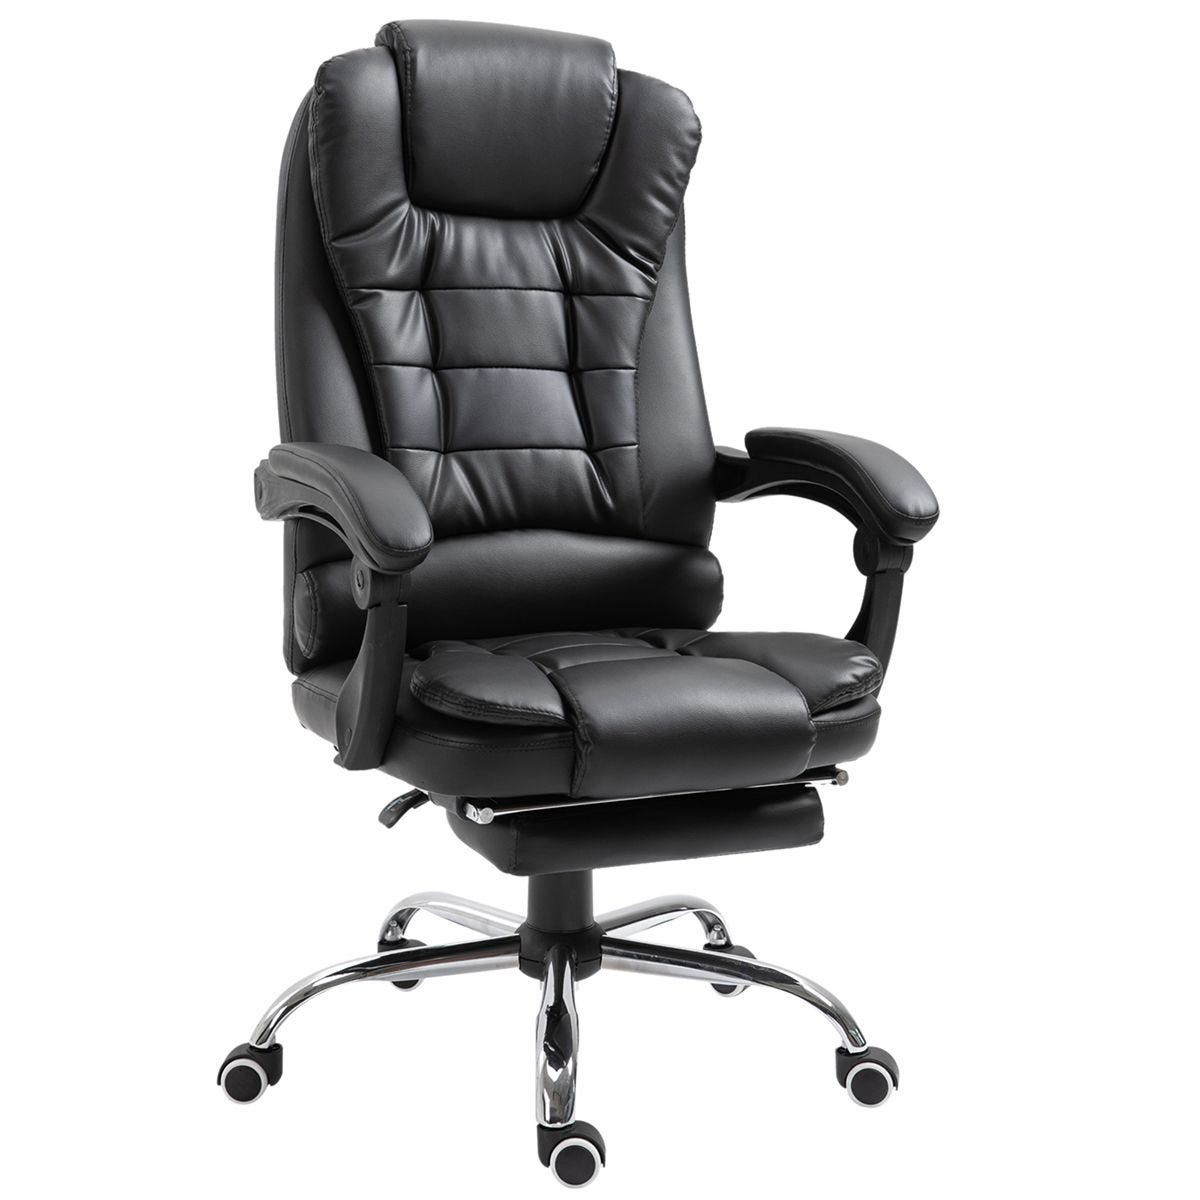 Zennor Nikko PU Leather Office Chair with Footrest - Black